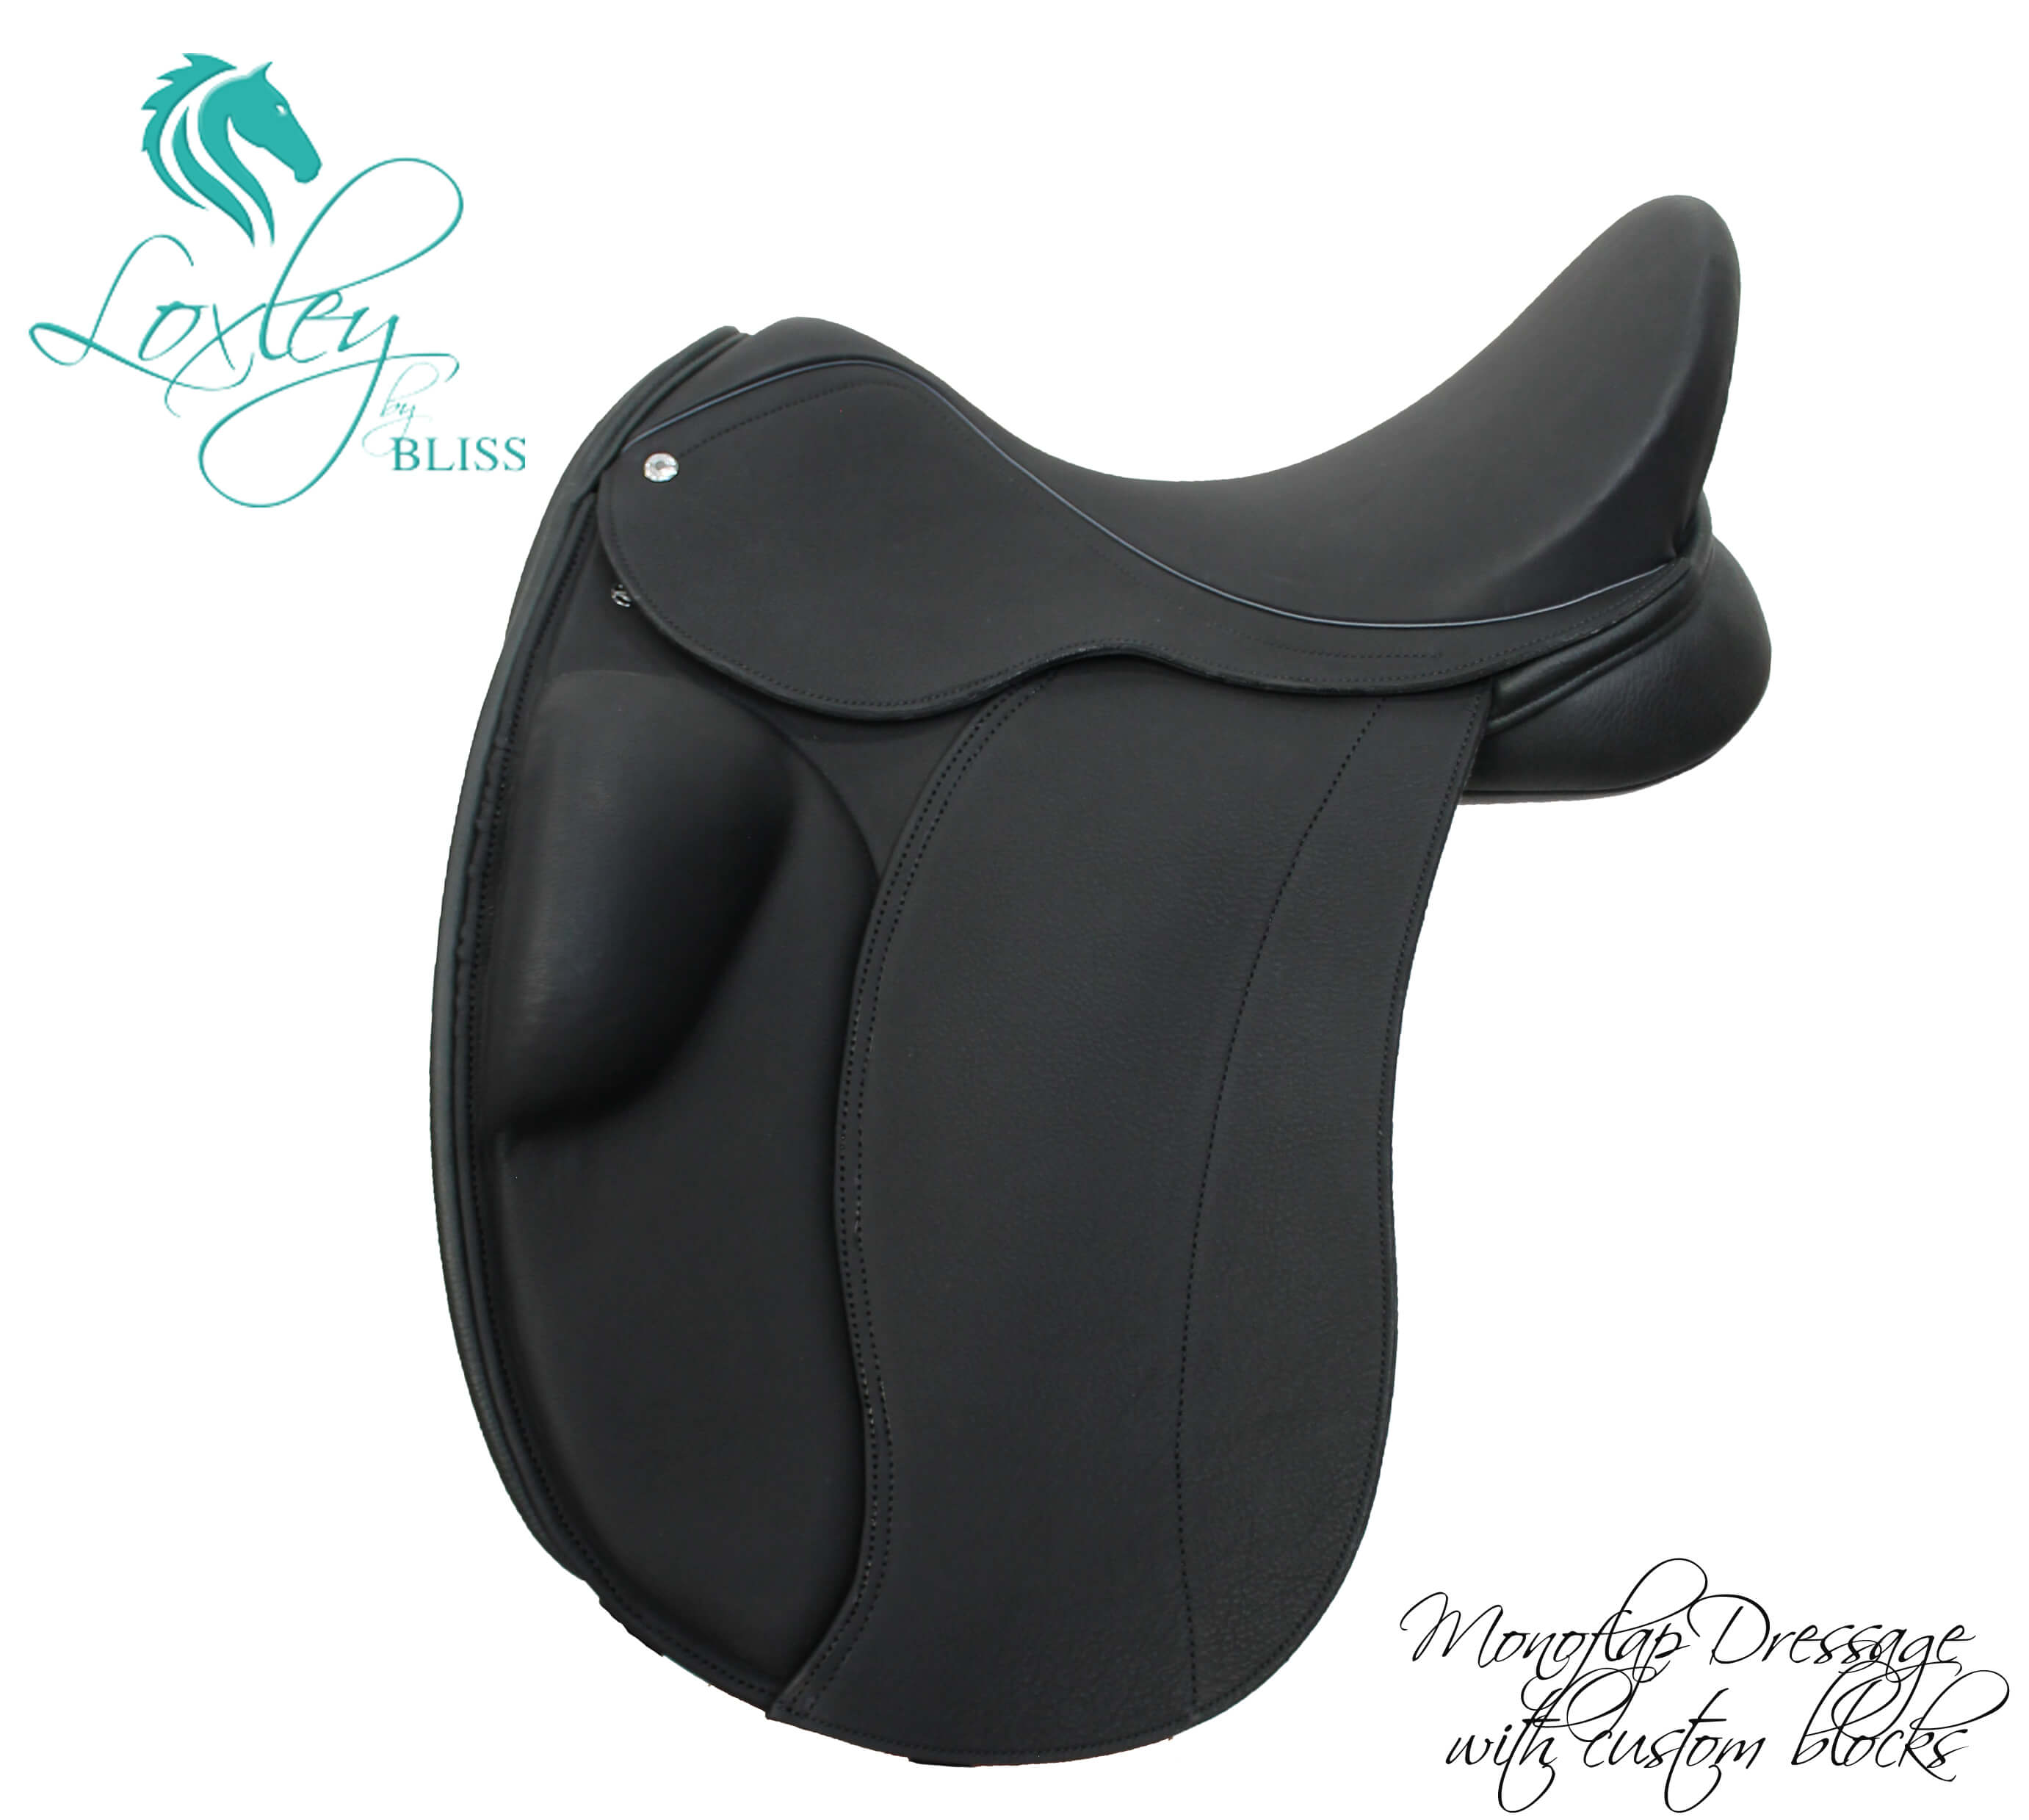 12 Loxley dressage monoflap - custom small block